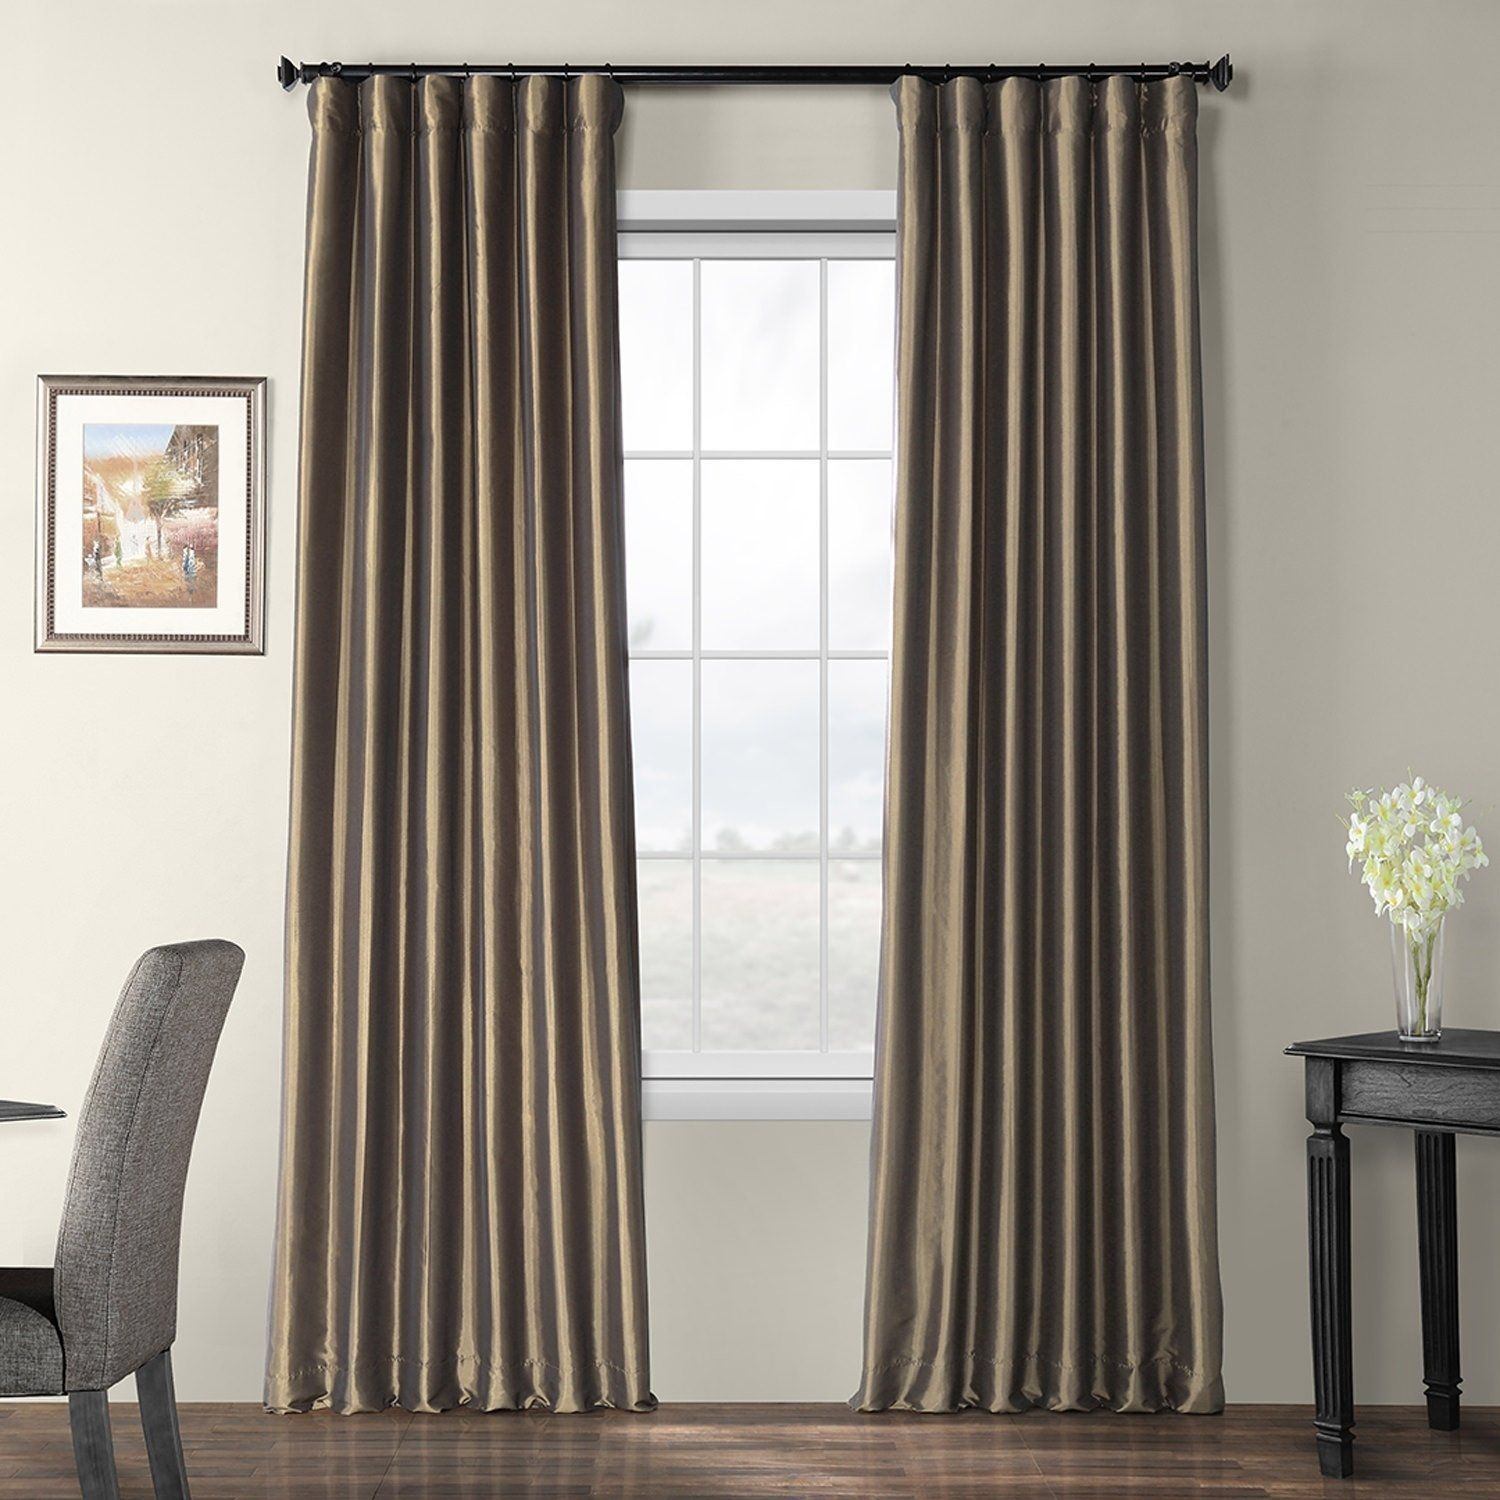 Exclusive Fabrics Faux Silk Taffeta 96 Inch Blackout Curtain Panel In Copper Brown As Is Item Copper Brown Panel Curtains Velvet Curtains Curtains